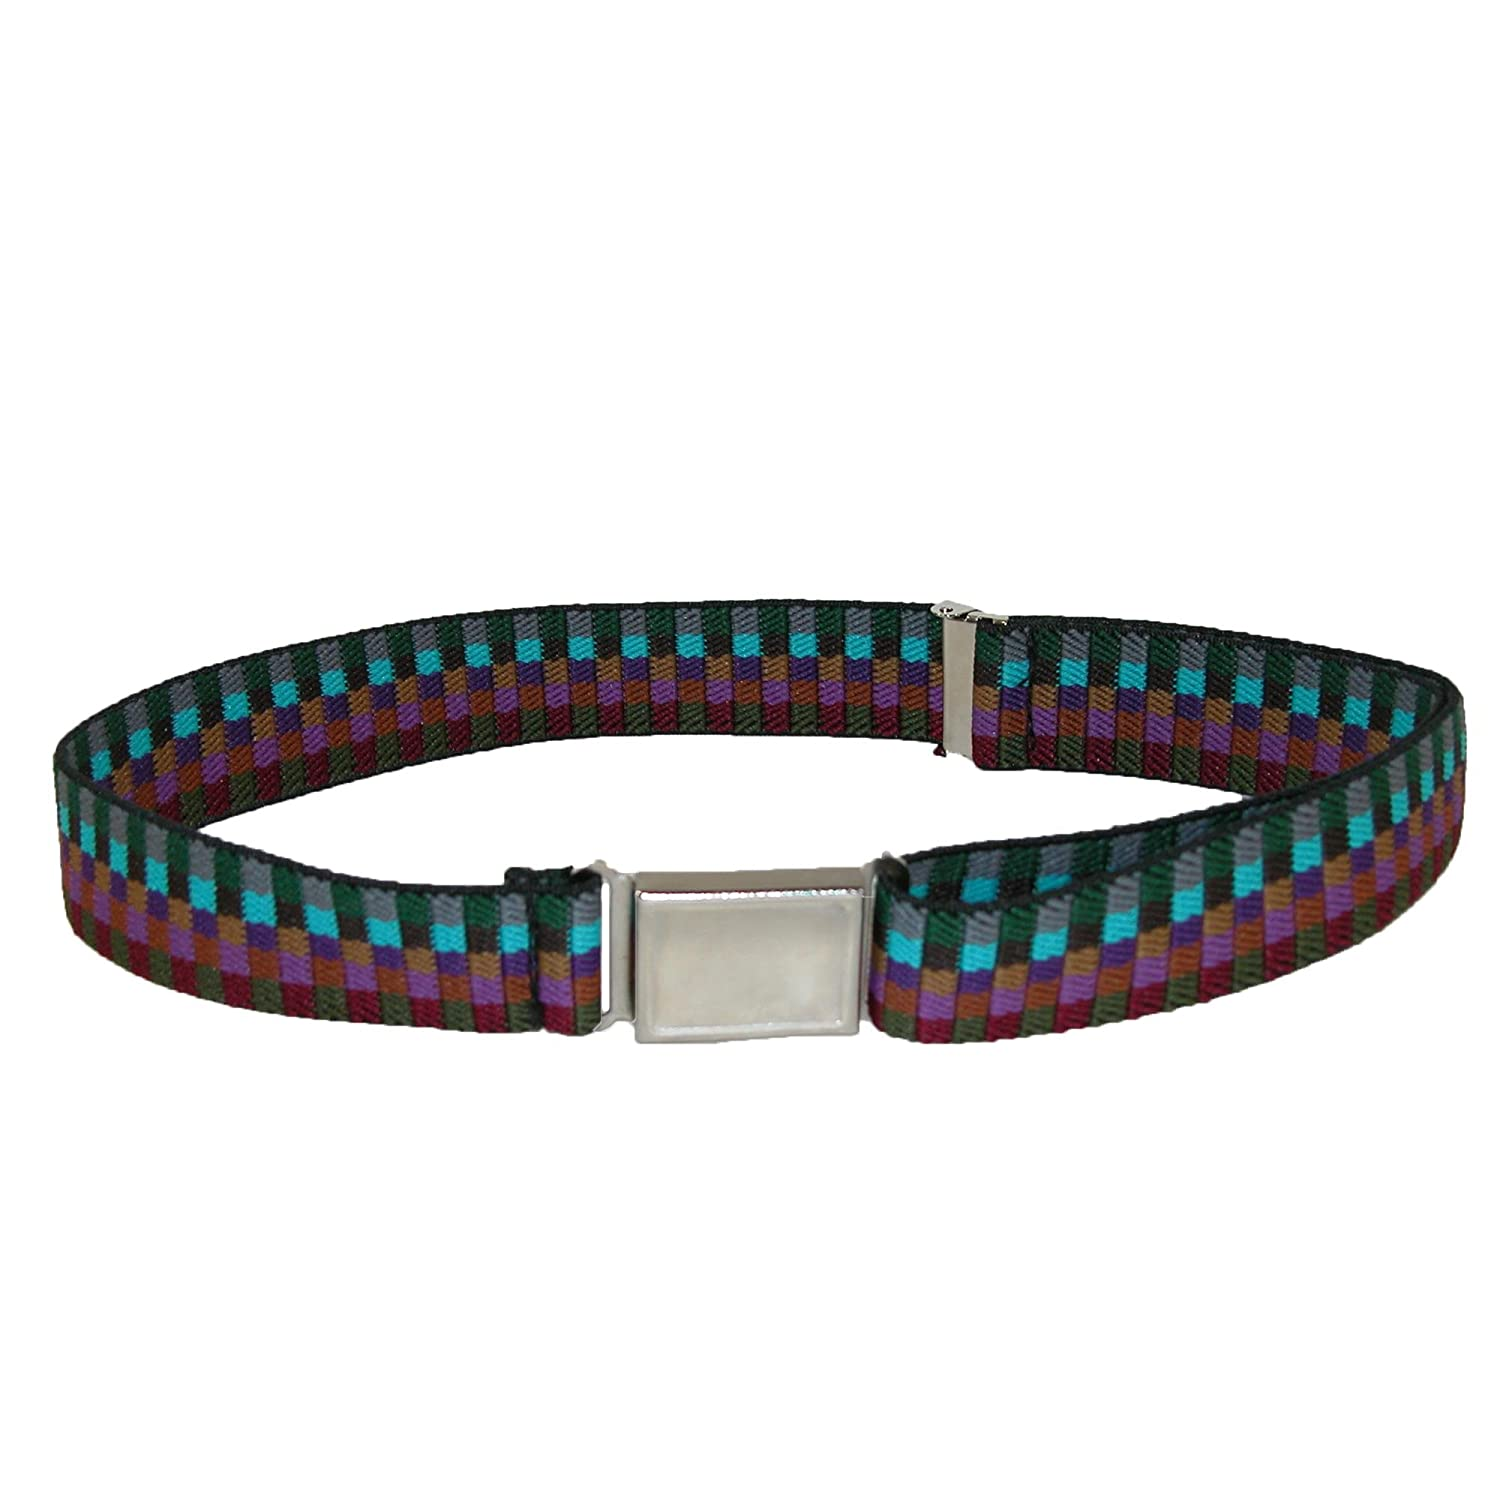 Kids' Elastic Multi Tone Adjustable Belt with Magnetic Buckle, Earth Tones CTM JK-319MUL-MUL